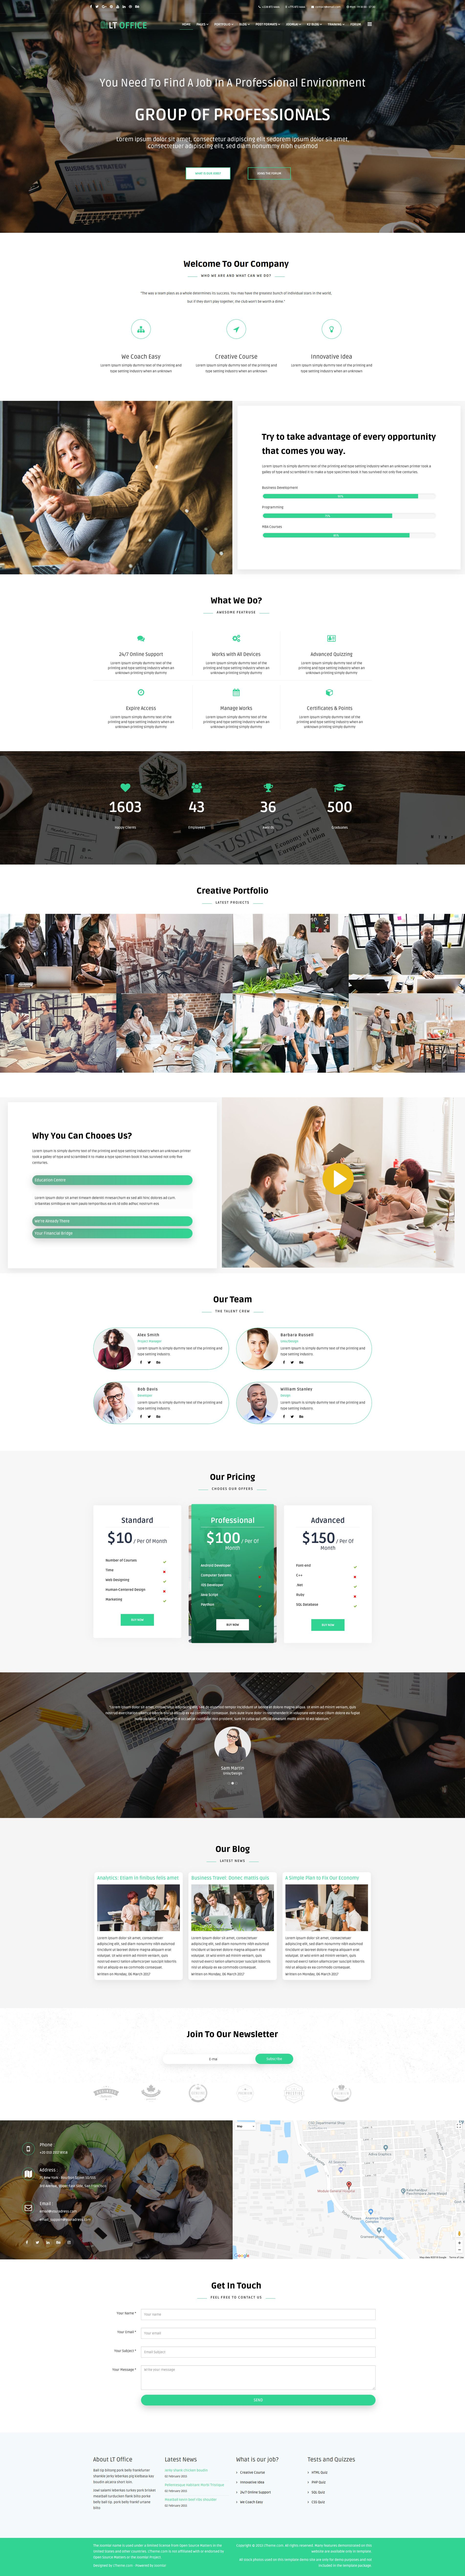 LT Office - Premium Private Joomla Company theme Screenshot 1